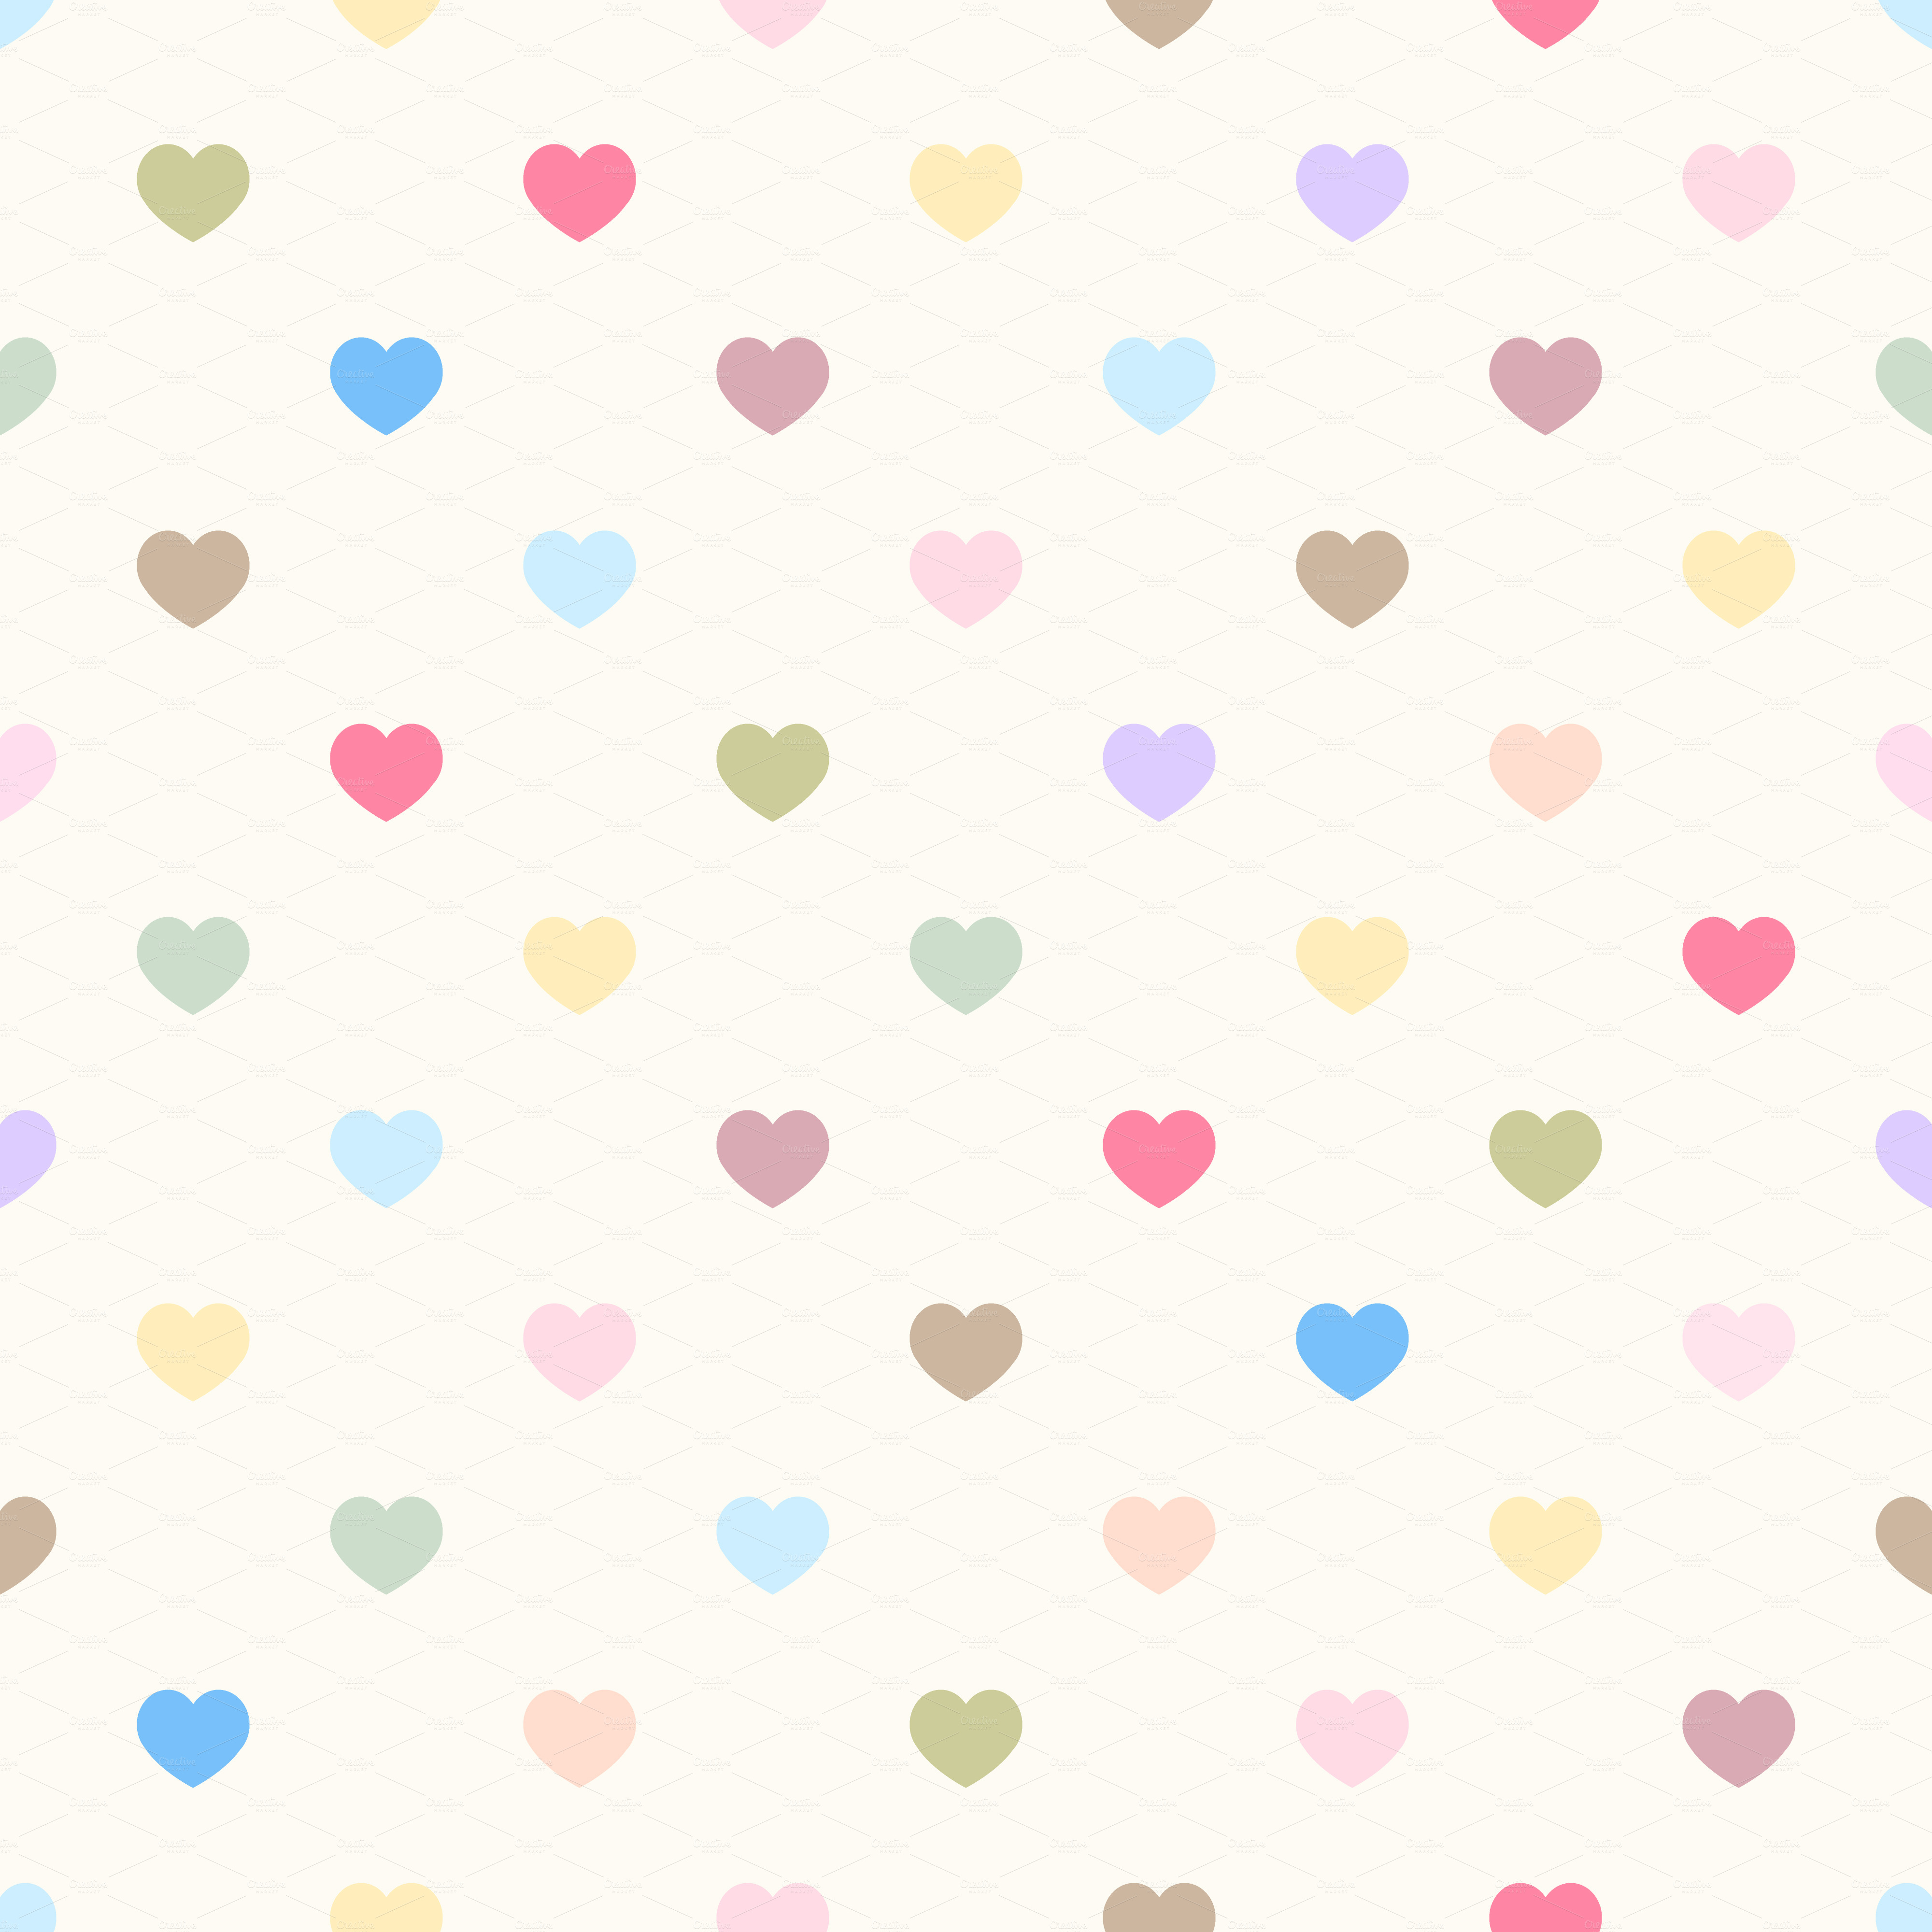 love and move  patterns heart background #12882